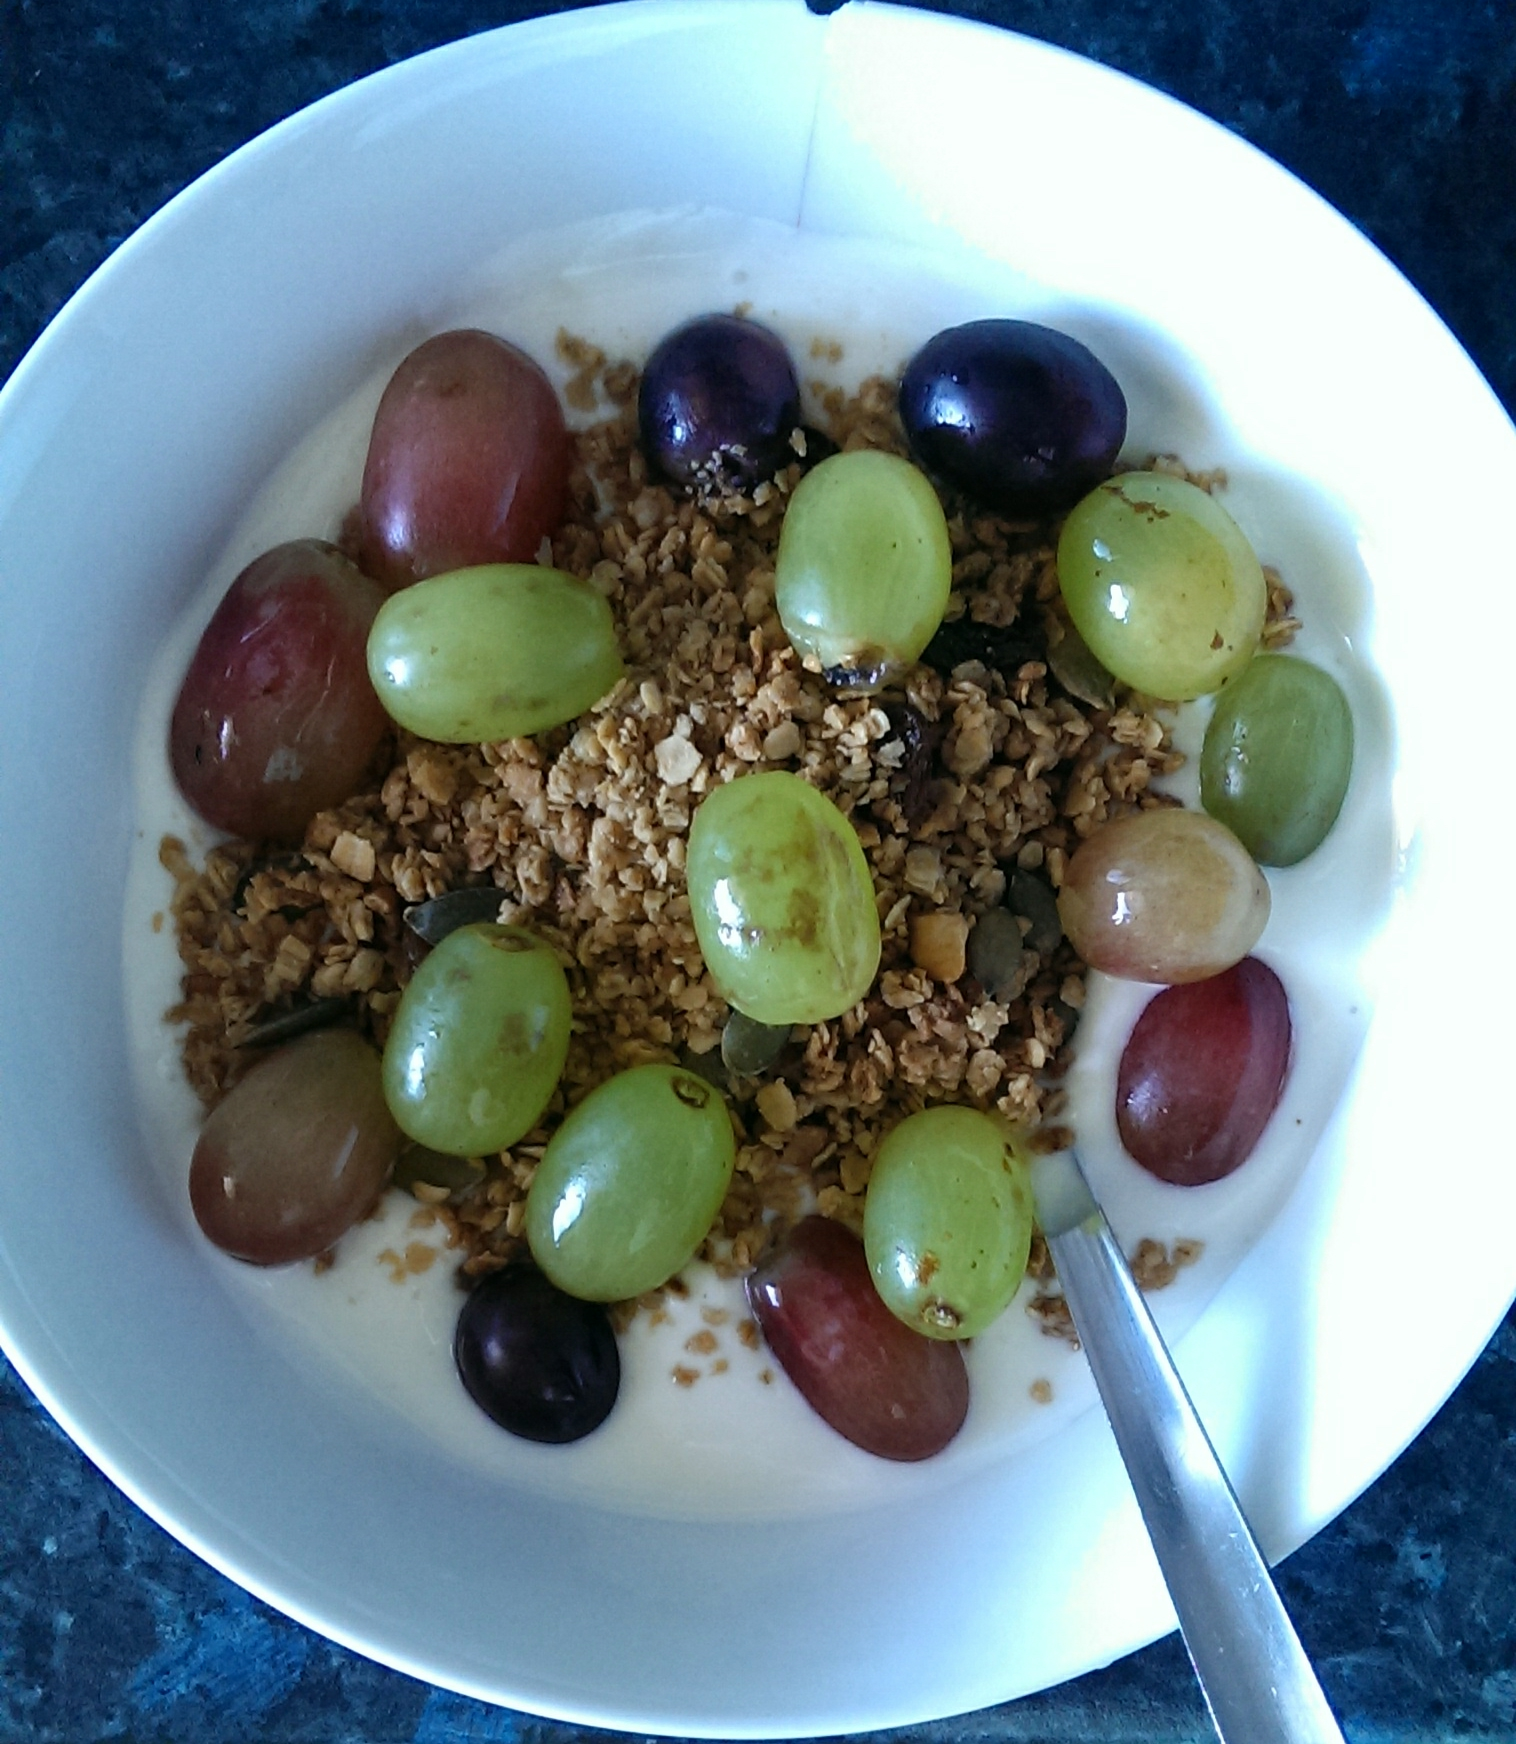 Homemade granola with  red and green grapes and natural yoghurt. Yummy!